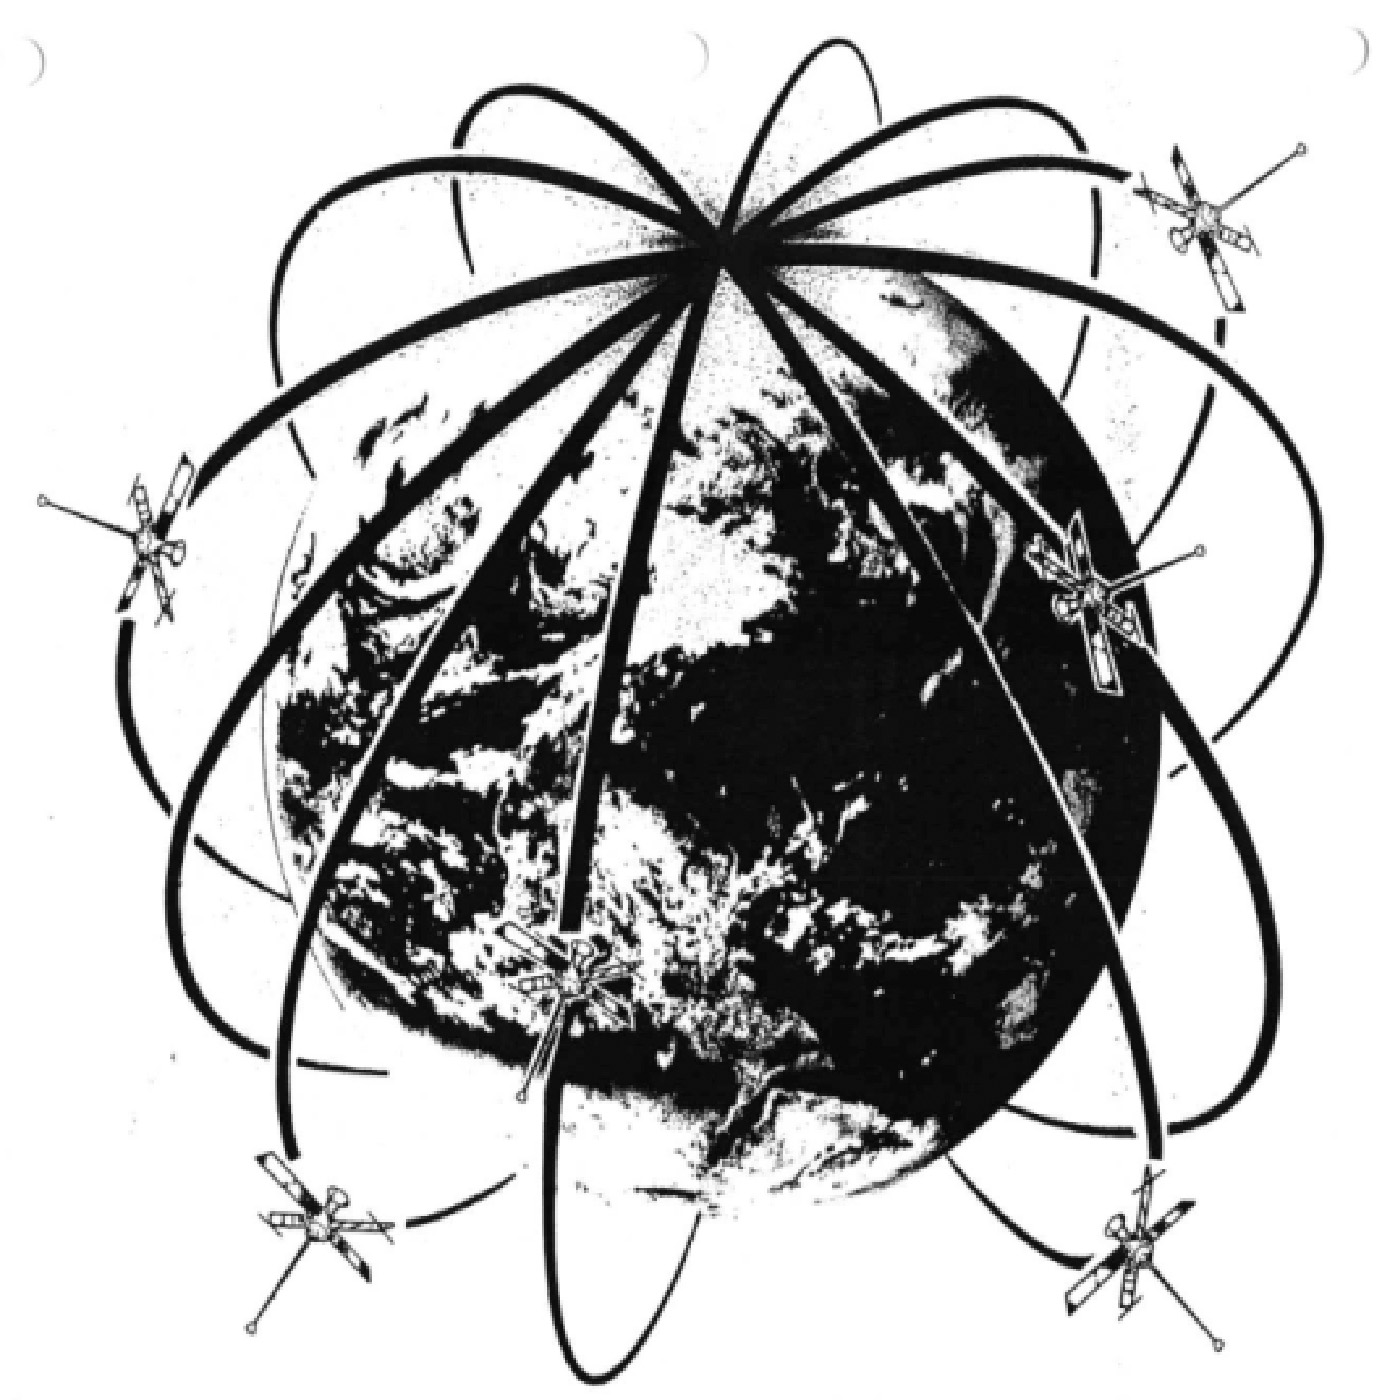 Figure 2. The Transit birdcage of operational orbits. (Credit: Bradford W. Parkinson and Stephen T. Powers)